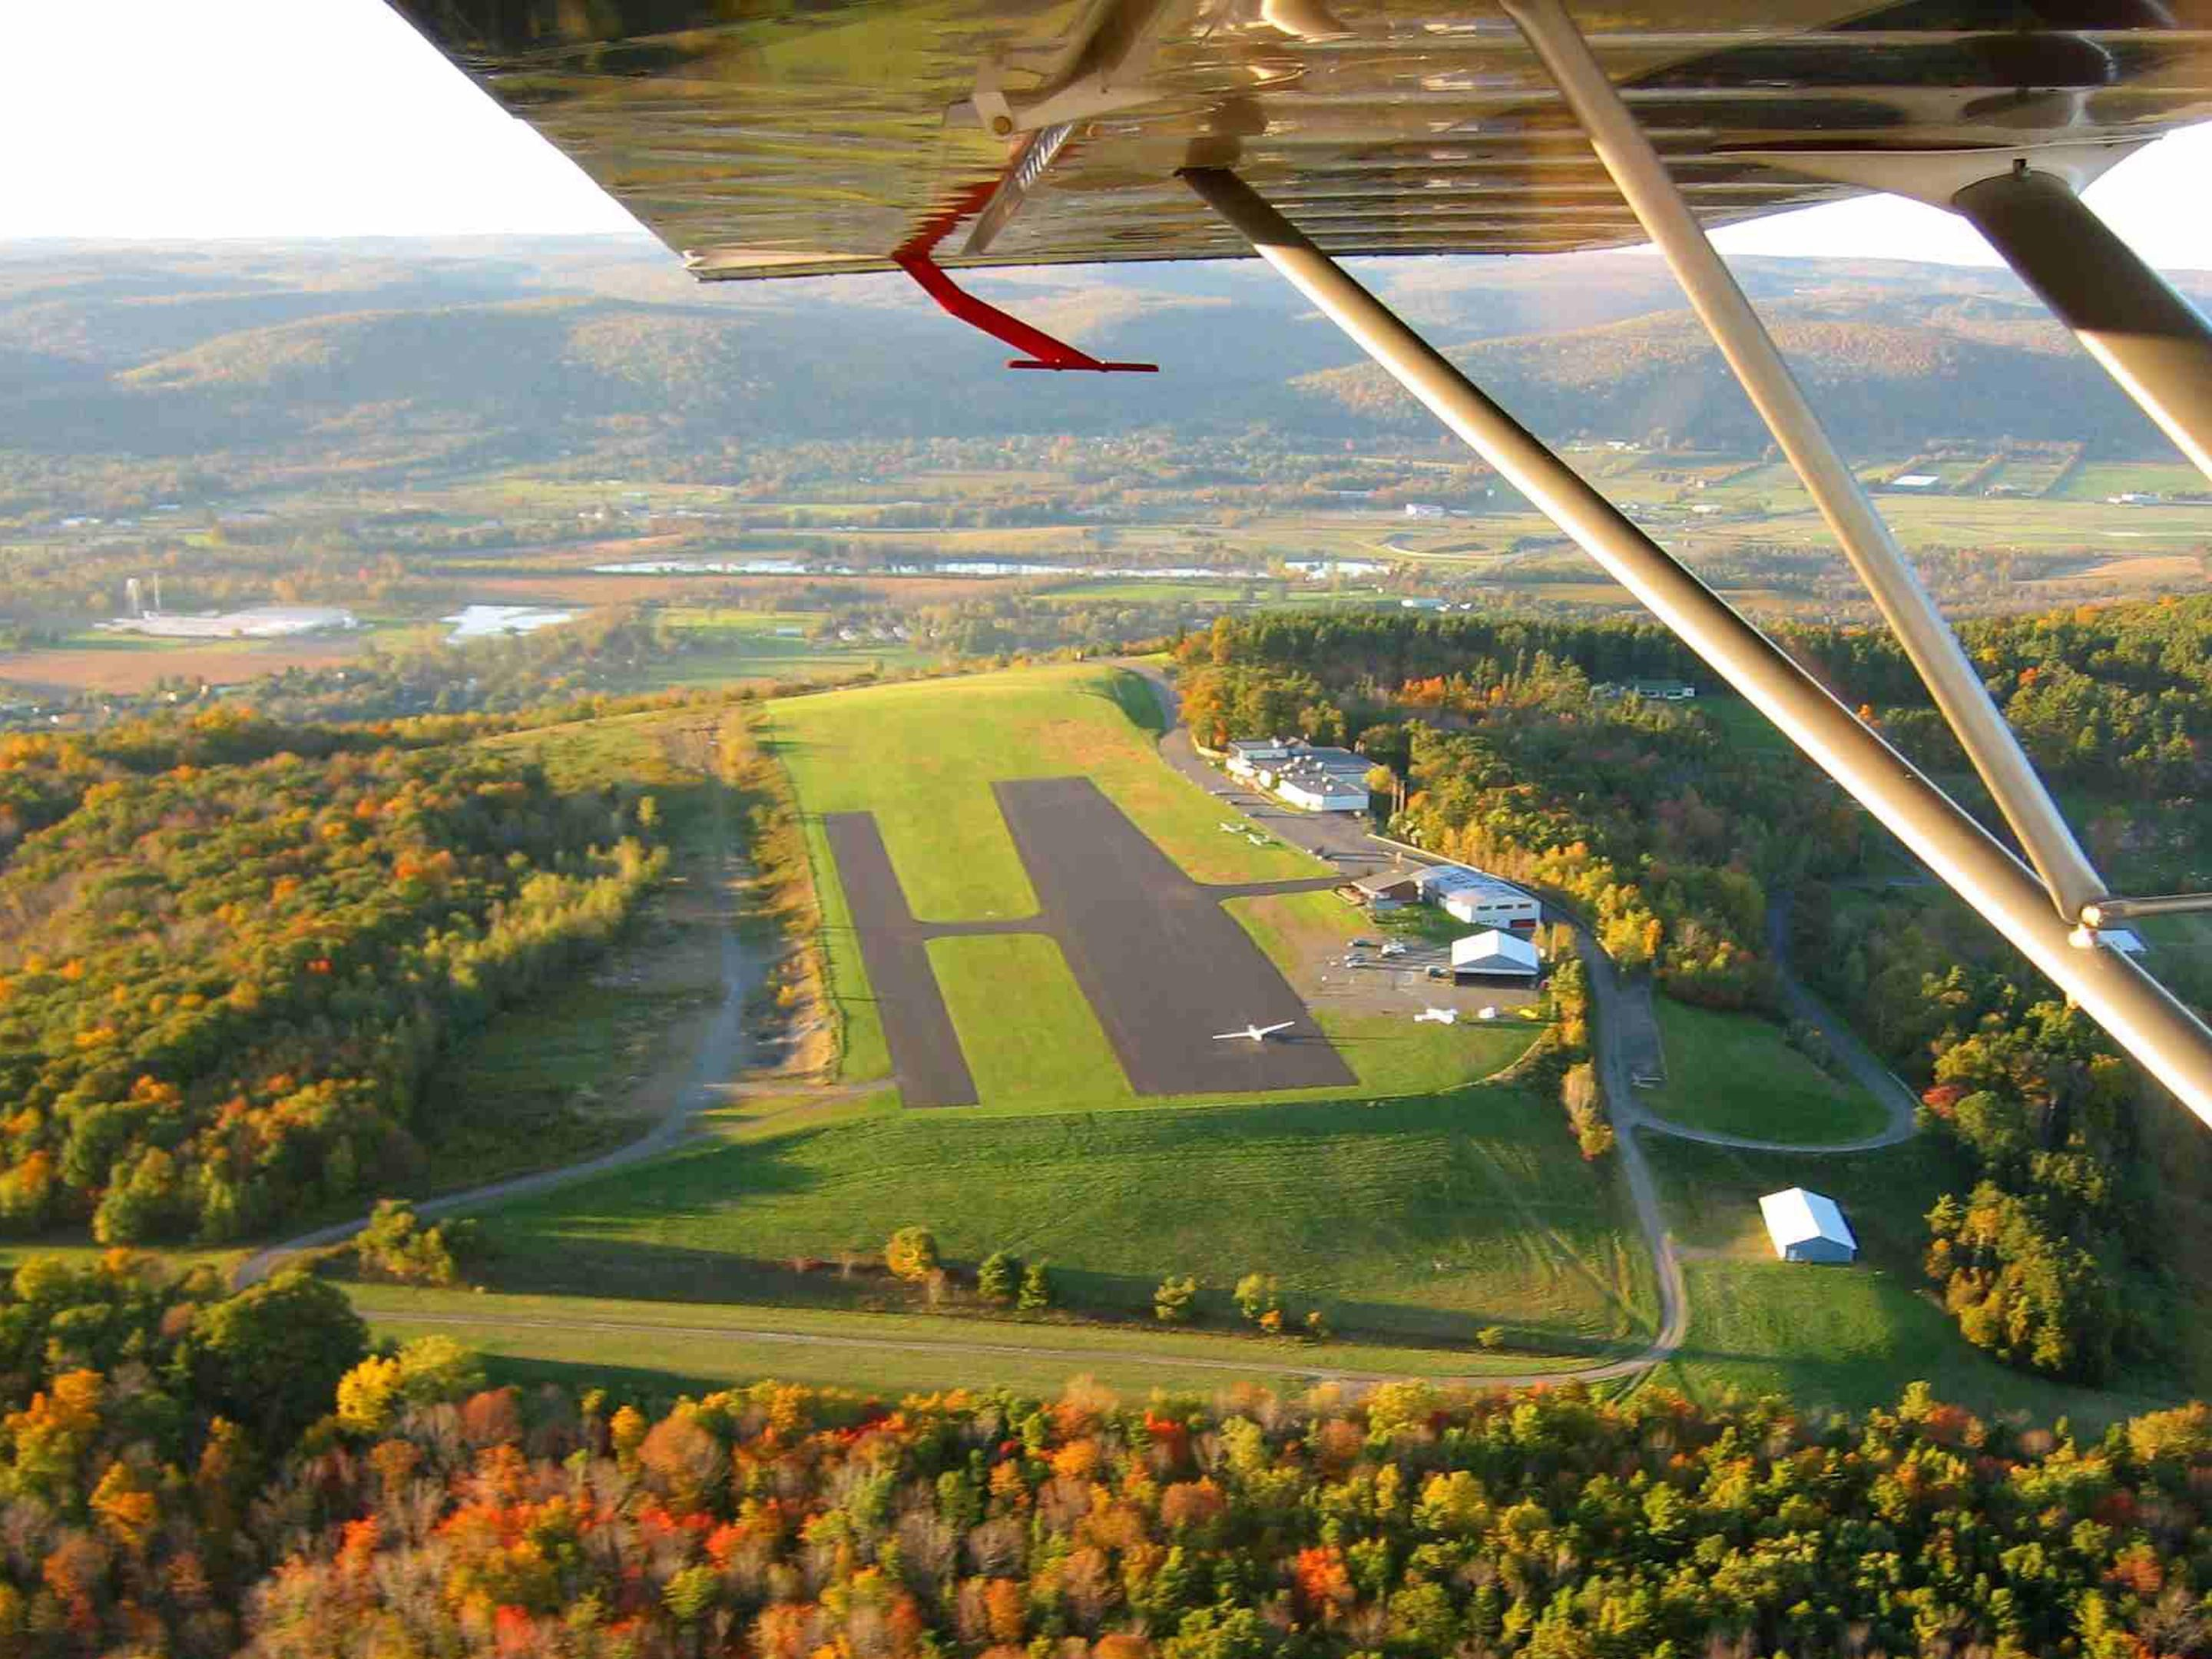 Soaring Capital of the World, Harris Hill, NY